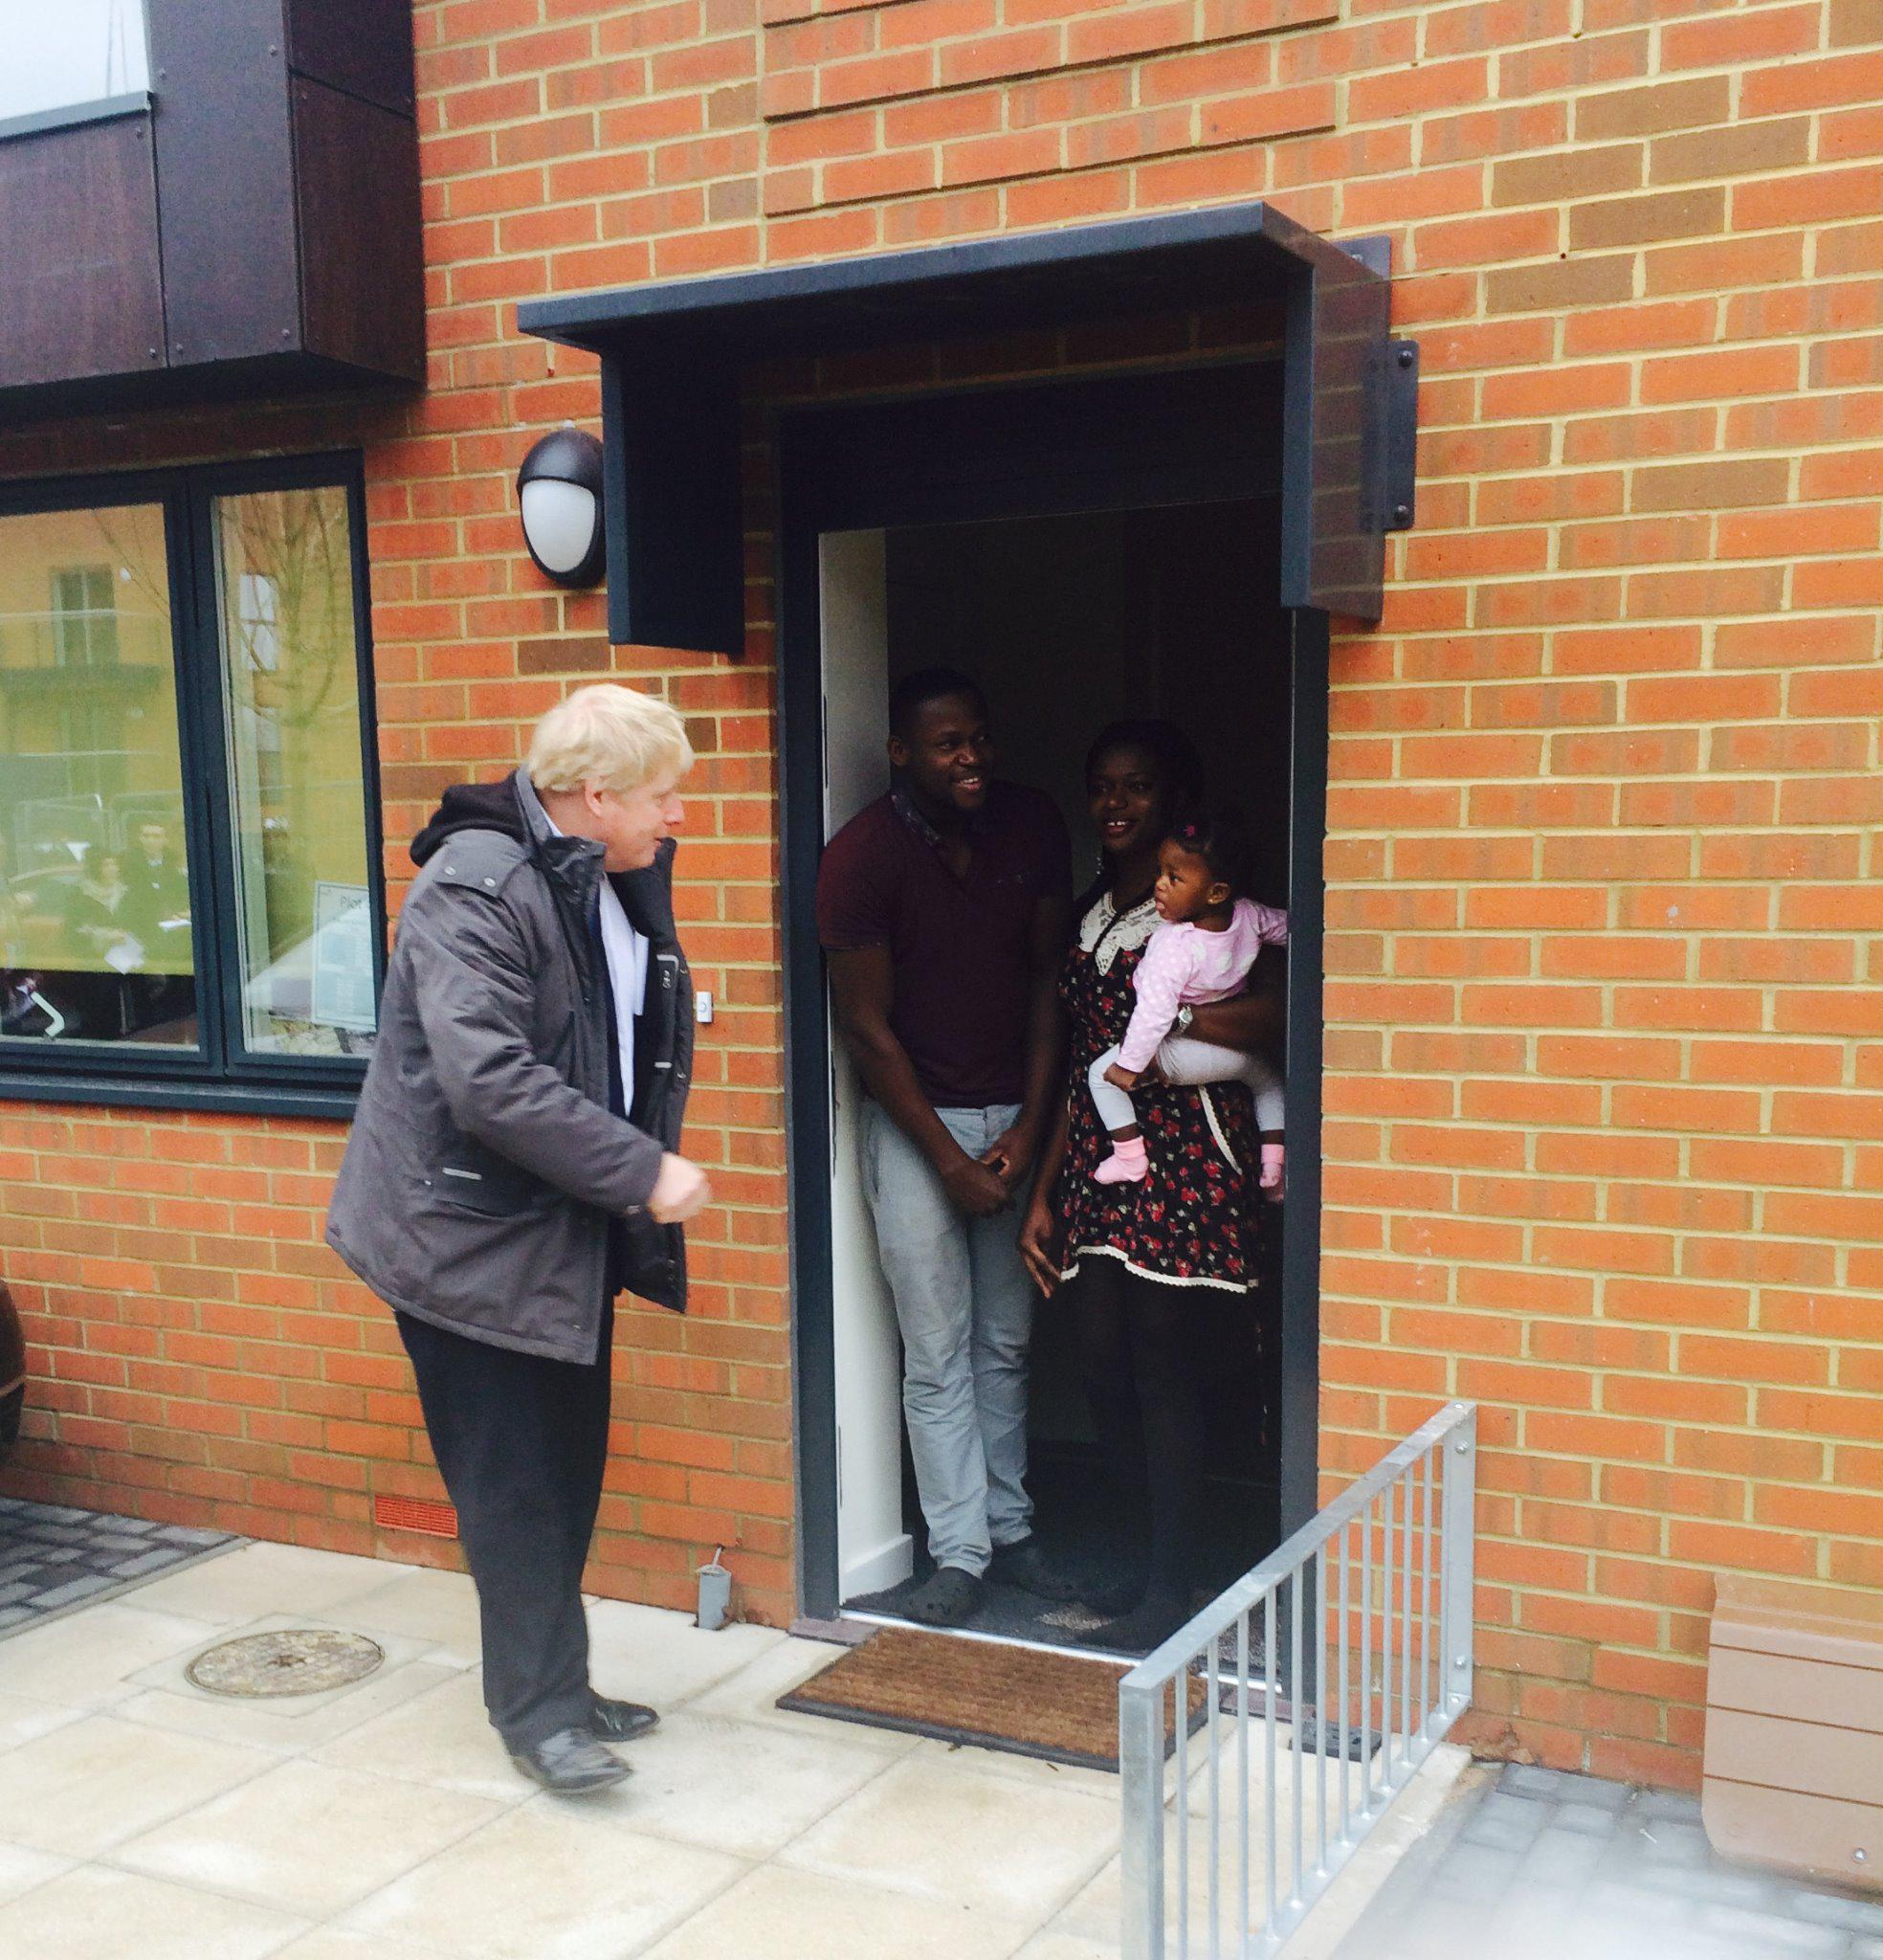 While there I met with some of the families who have or are preparing to move in to their fantastic new homes 2/2 http://t.co/YiT0dUFKMg